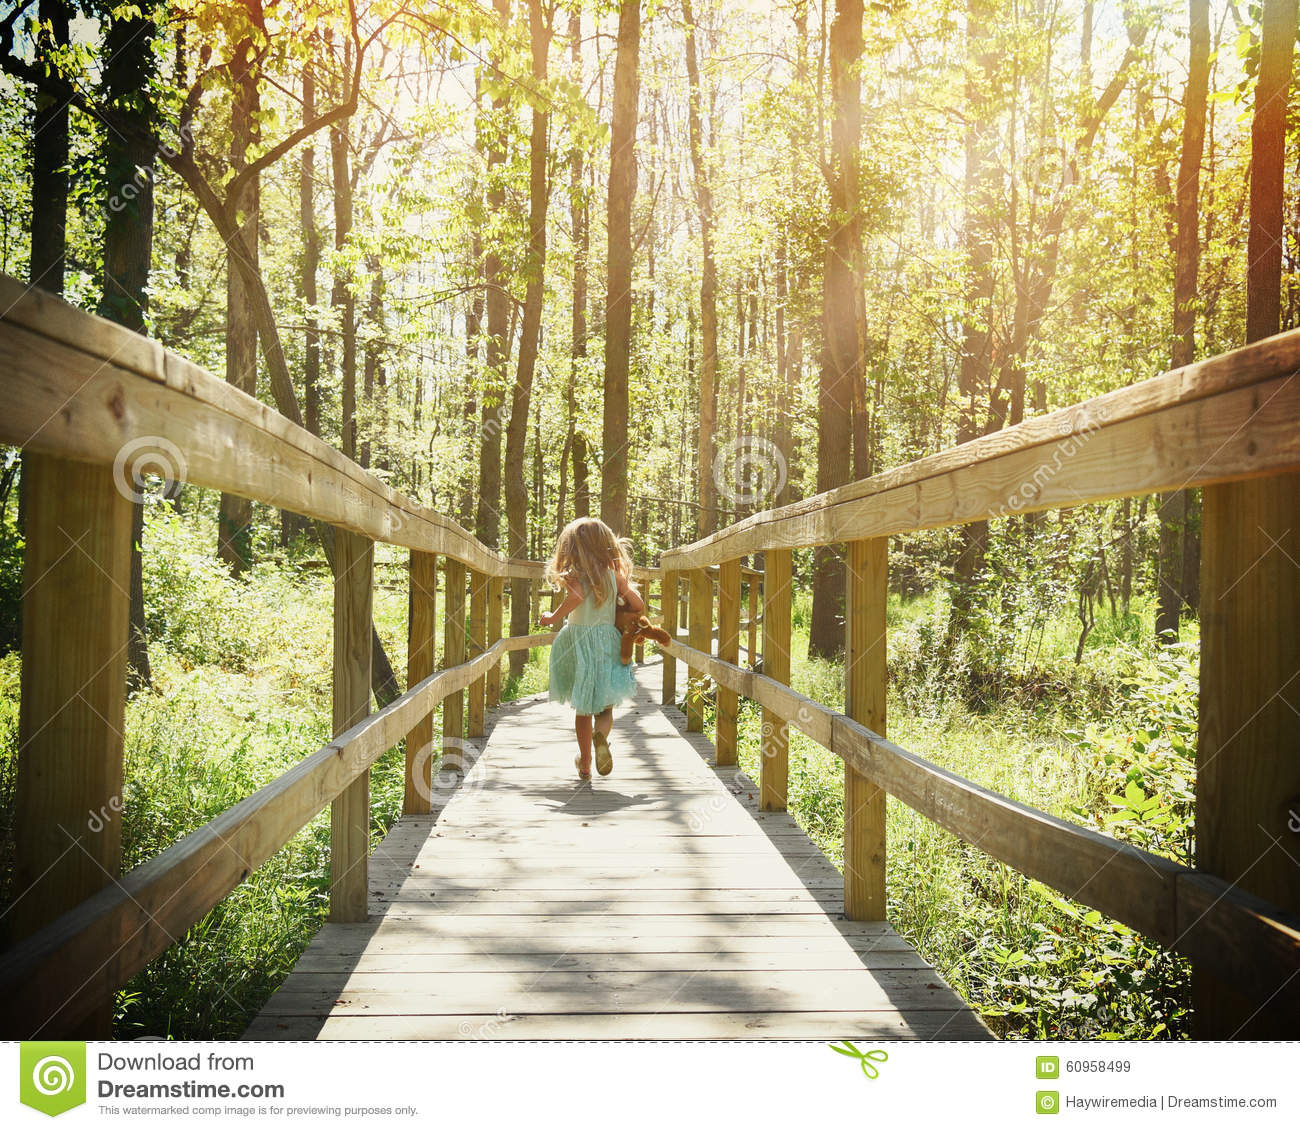 Wallpaper Download Alone Girl Child Running In Woods With Sunlight Stock Photo Image